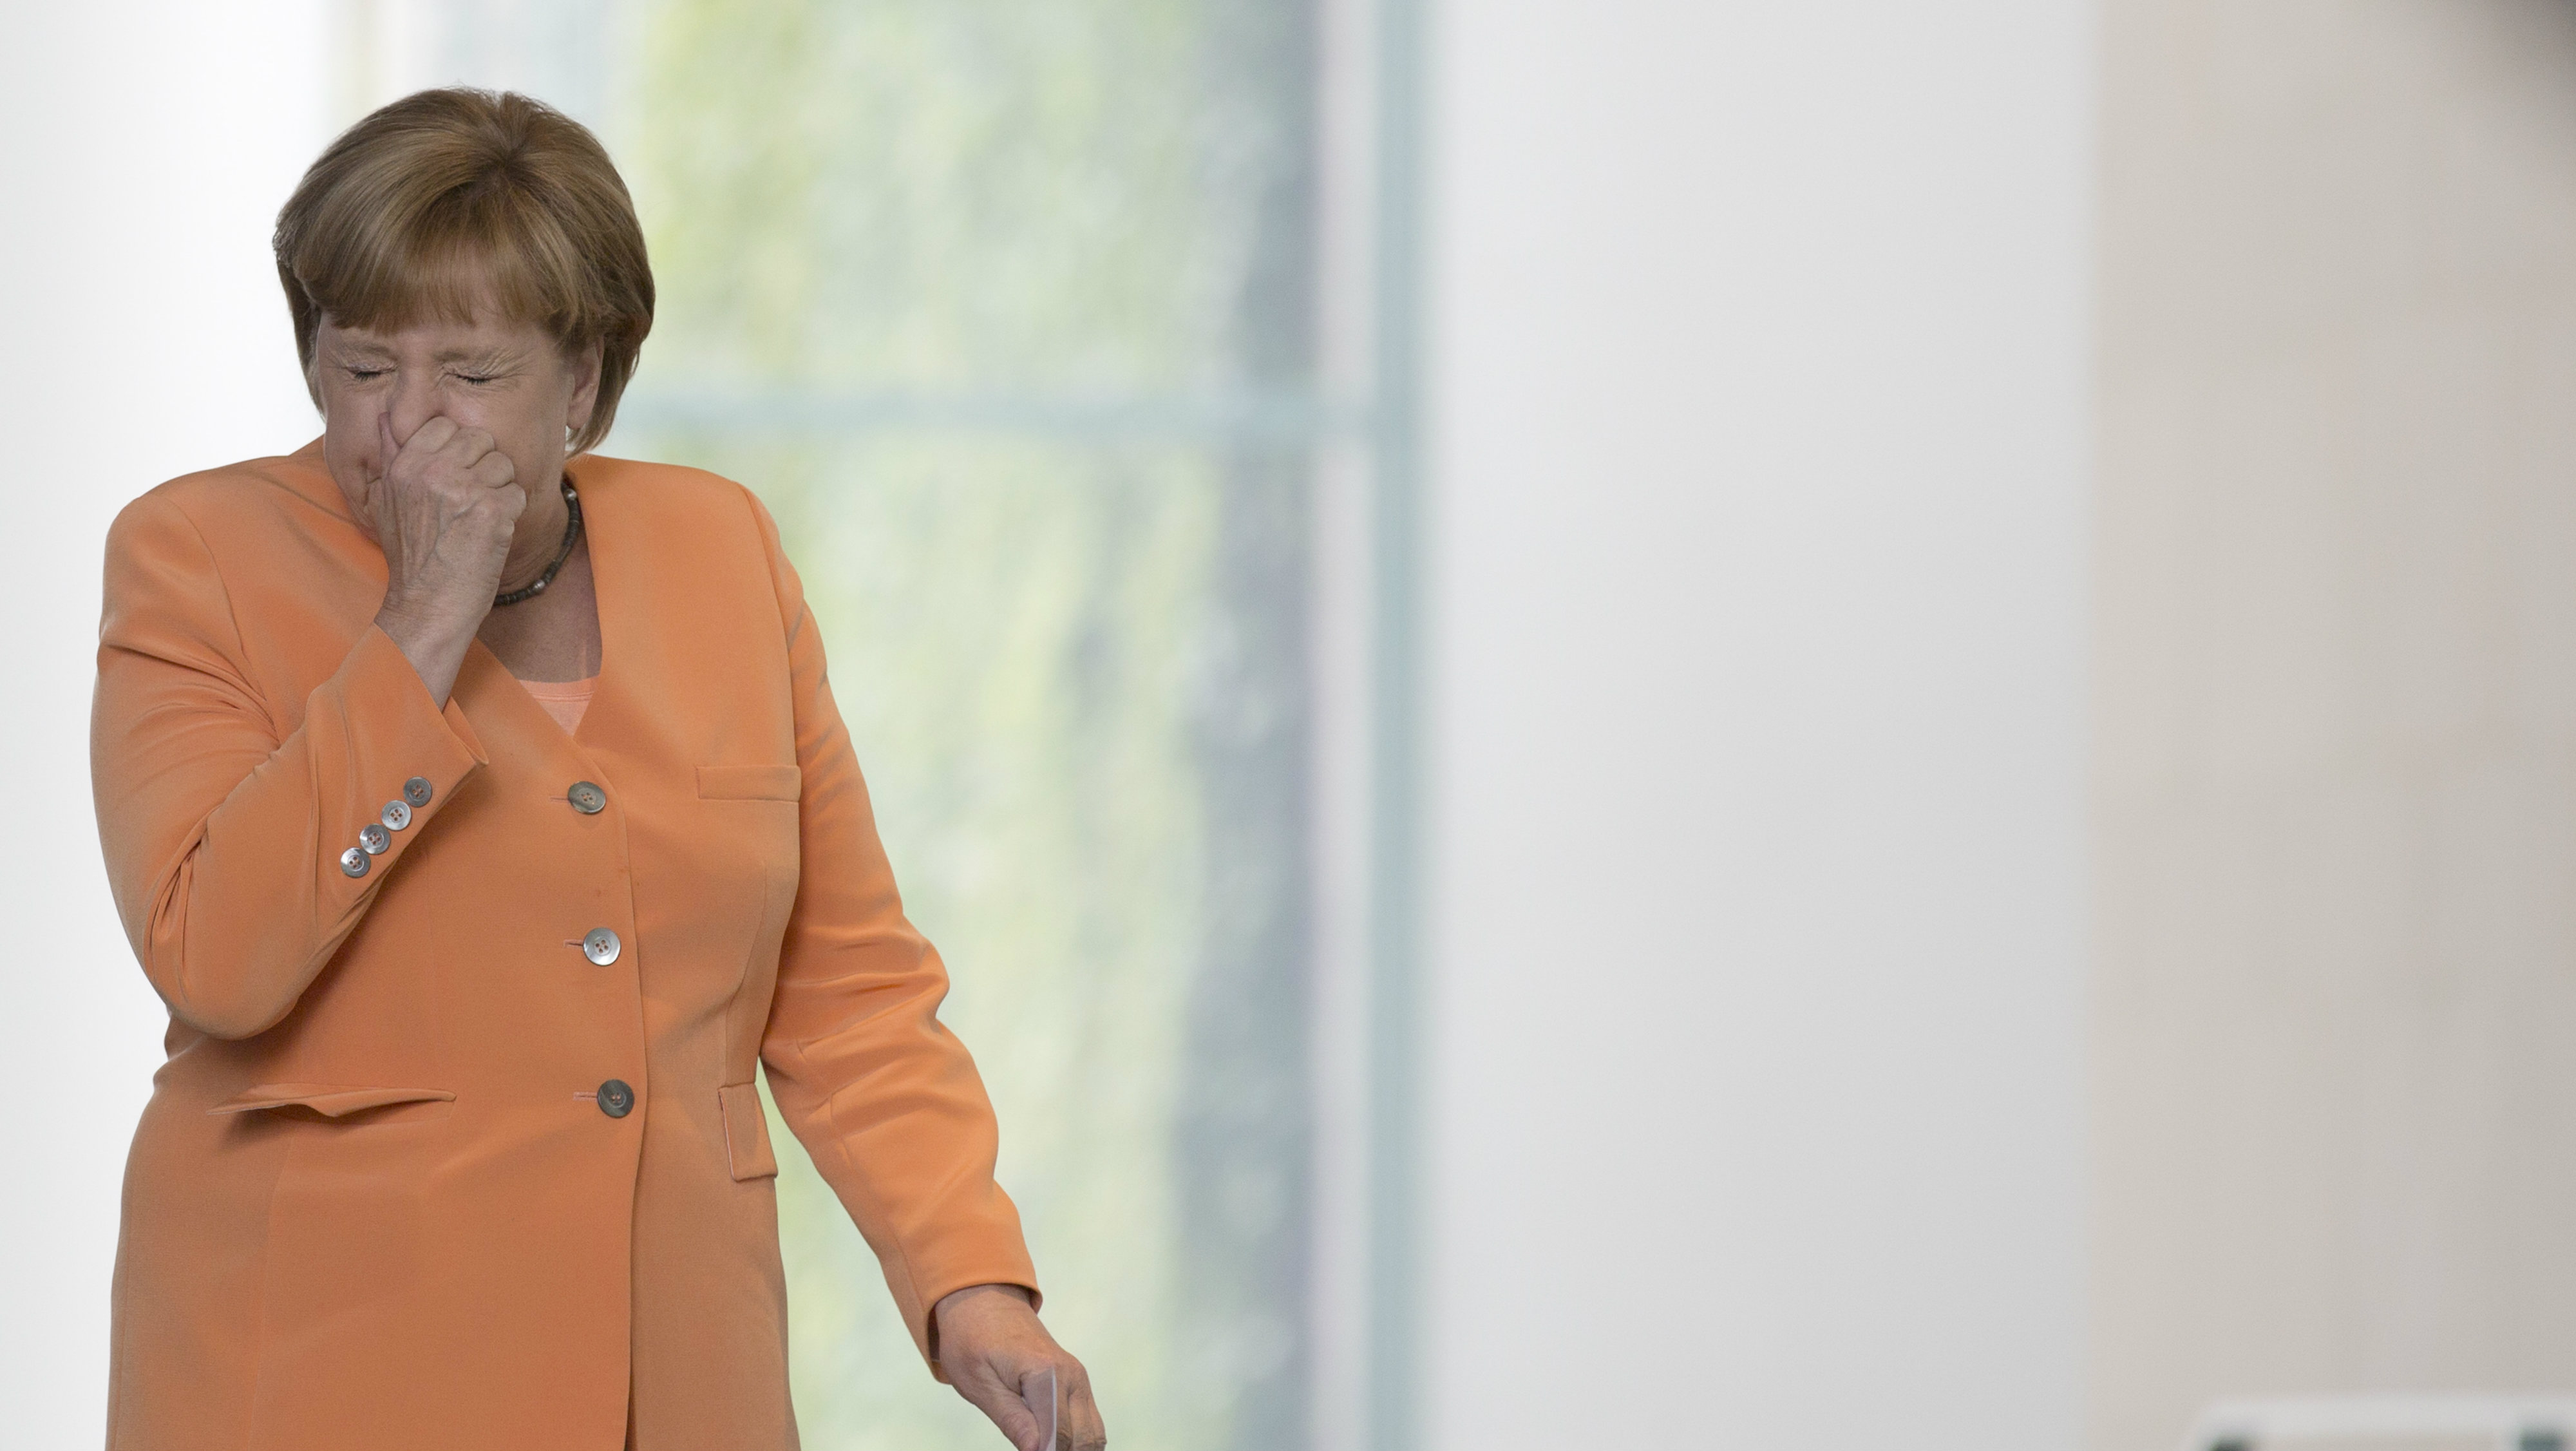 German Chancellor Angela Merkel sneezes on her way to a press conference with Slovenian Prime Minister Alenka Bratusek, unseen, in Berlin, Germany,